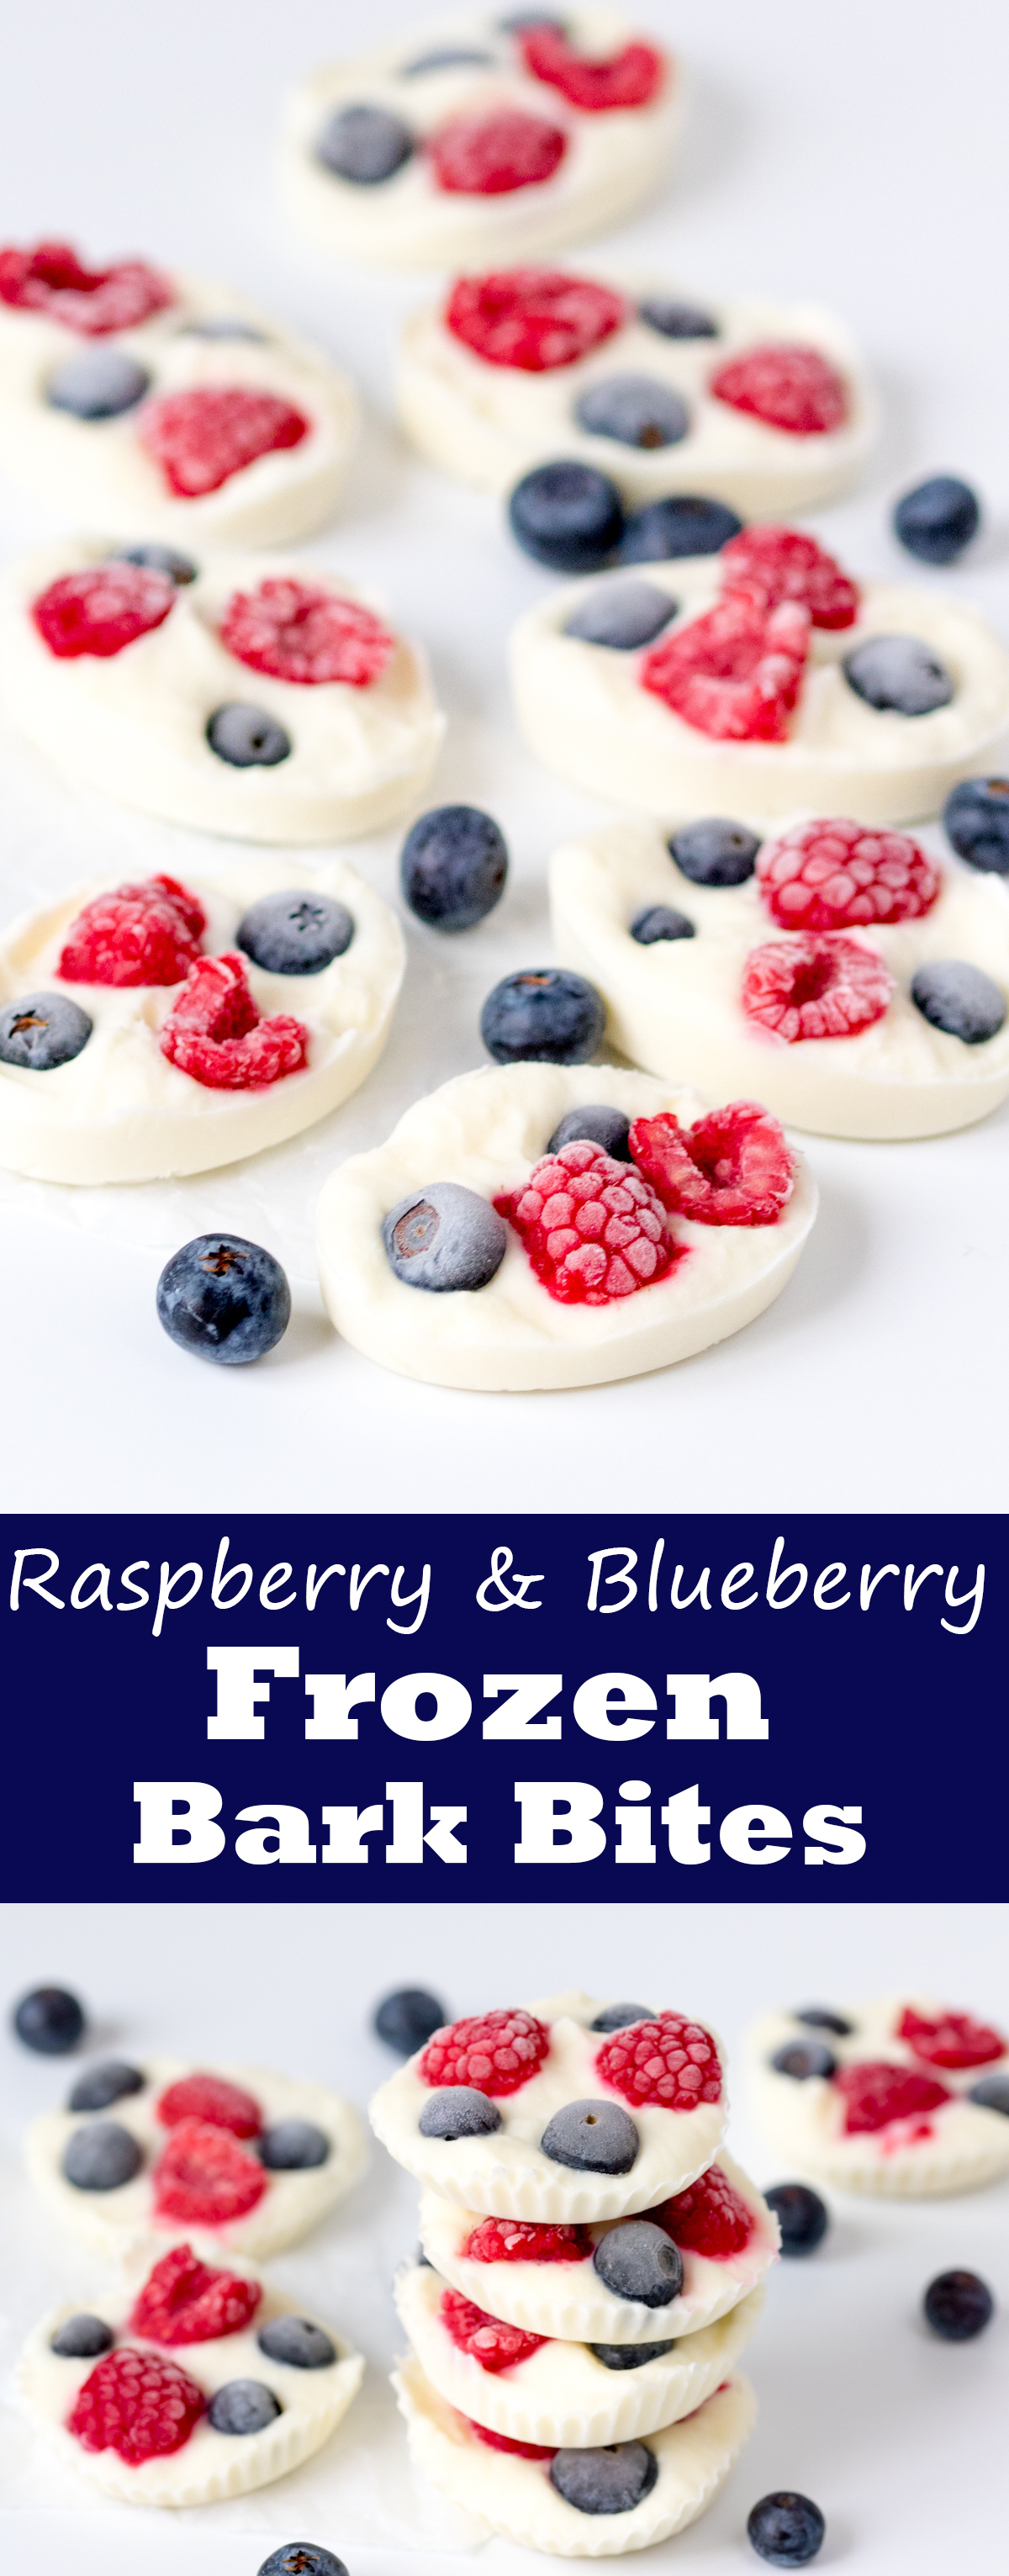 Raspberry and blueberry yogurt bark bites - a tasty snack that the kids will love! A great idea for Memorial day too!